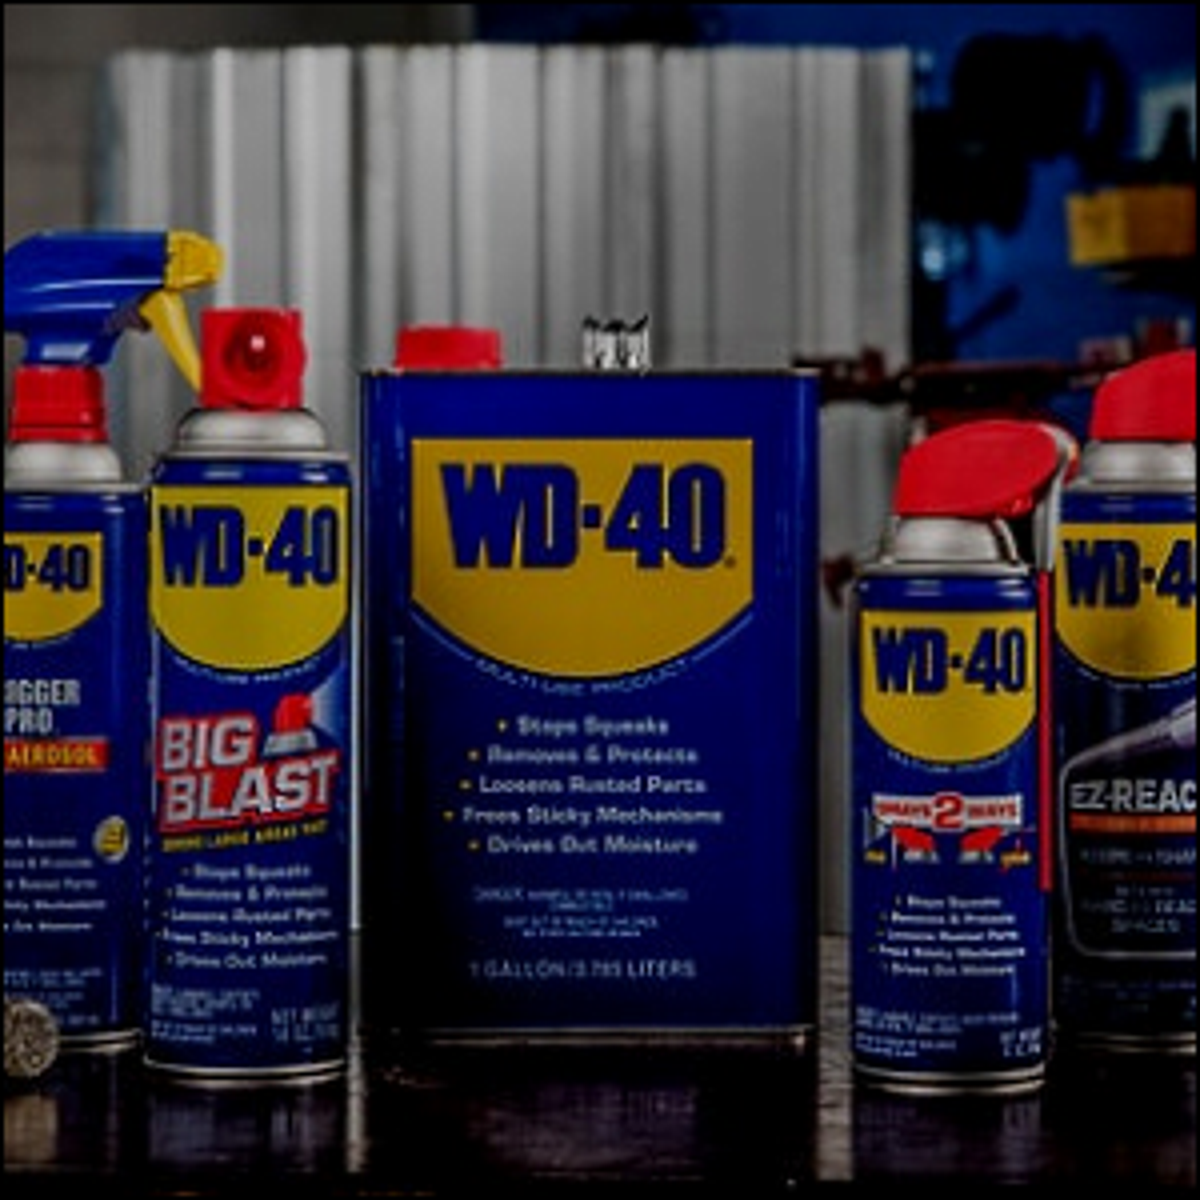 A group of various WD-40 brand products.